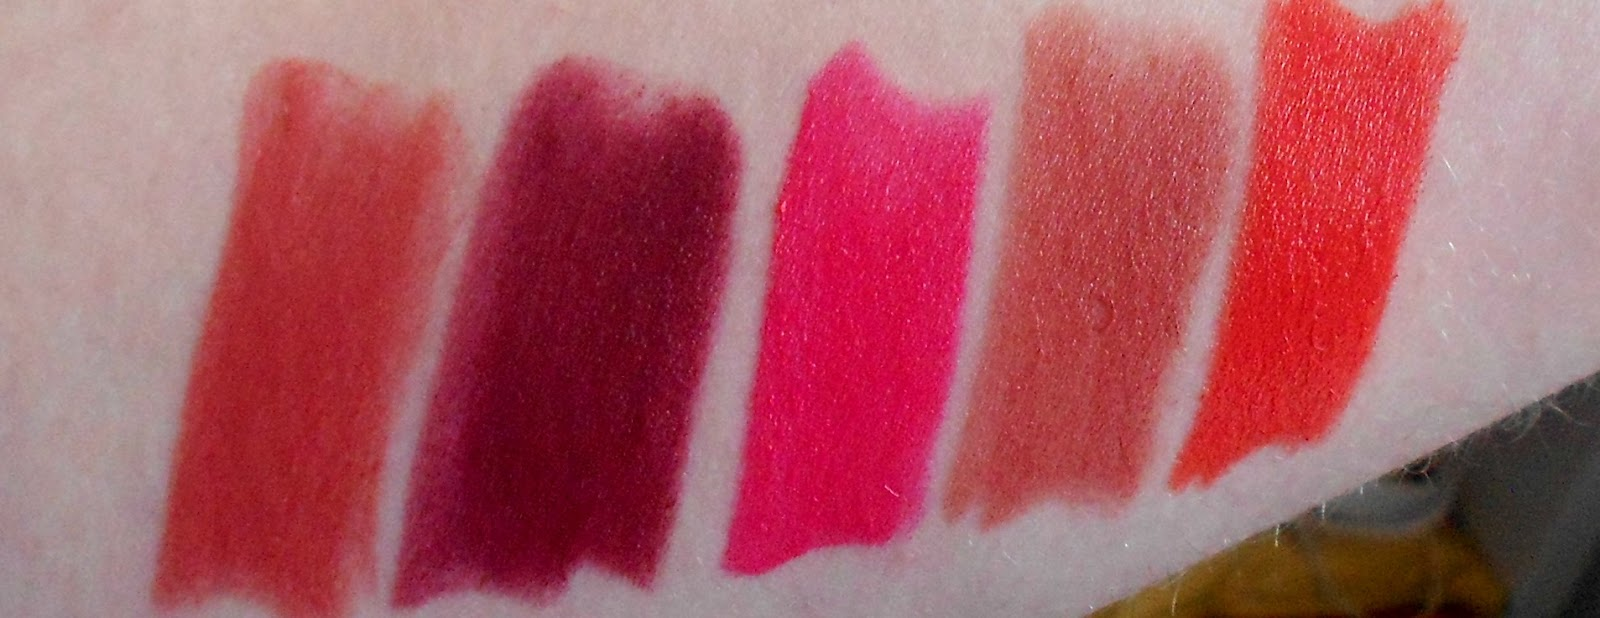 makeup rumours haul  lipstick swatches